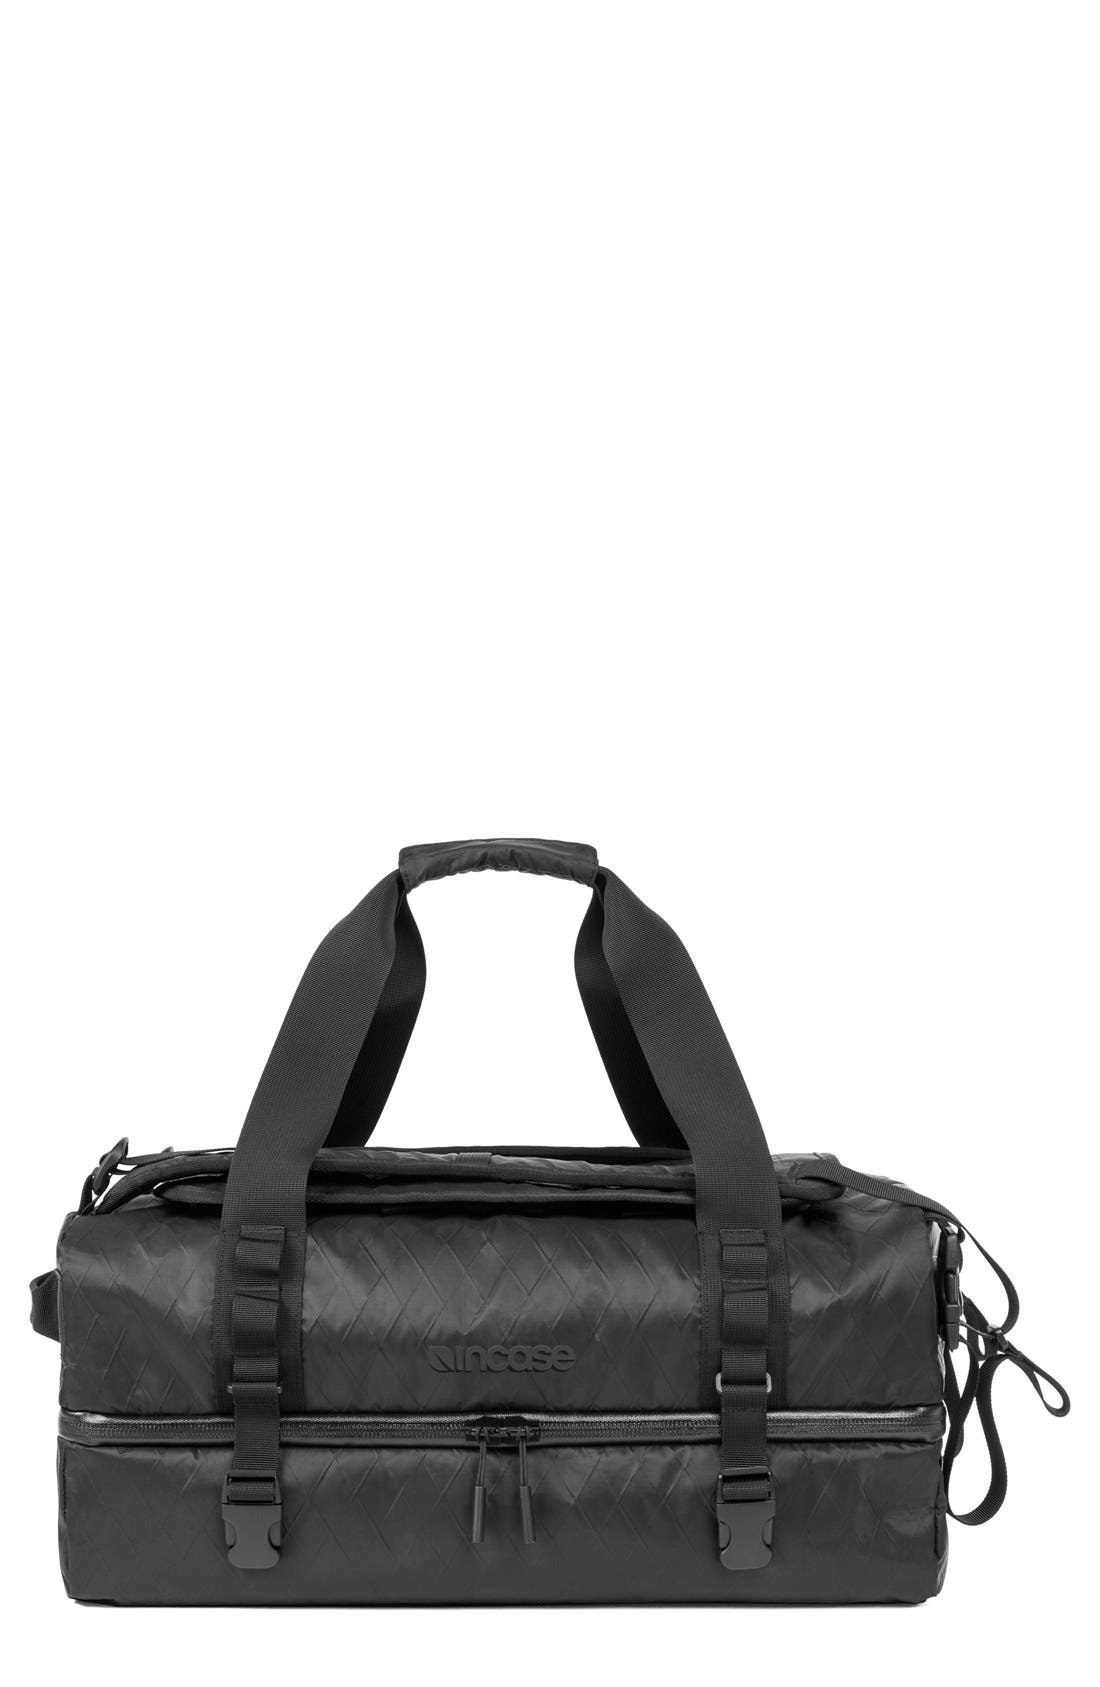 Incase Designs TRACTO Diamond Wire Split Travel Bag